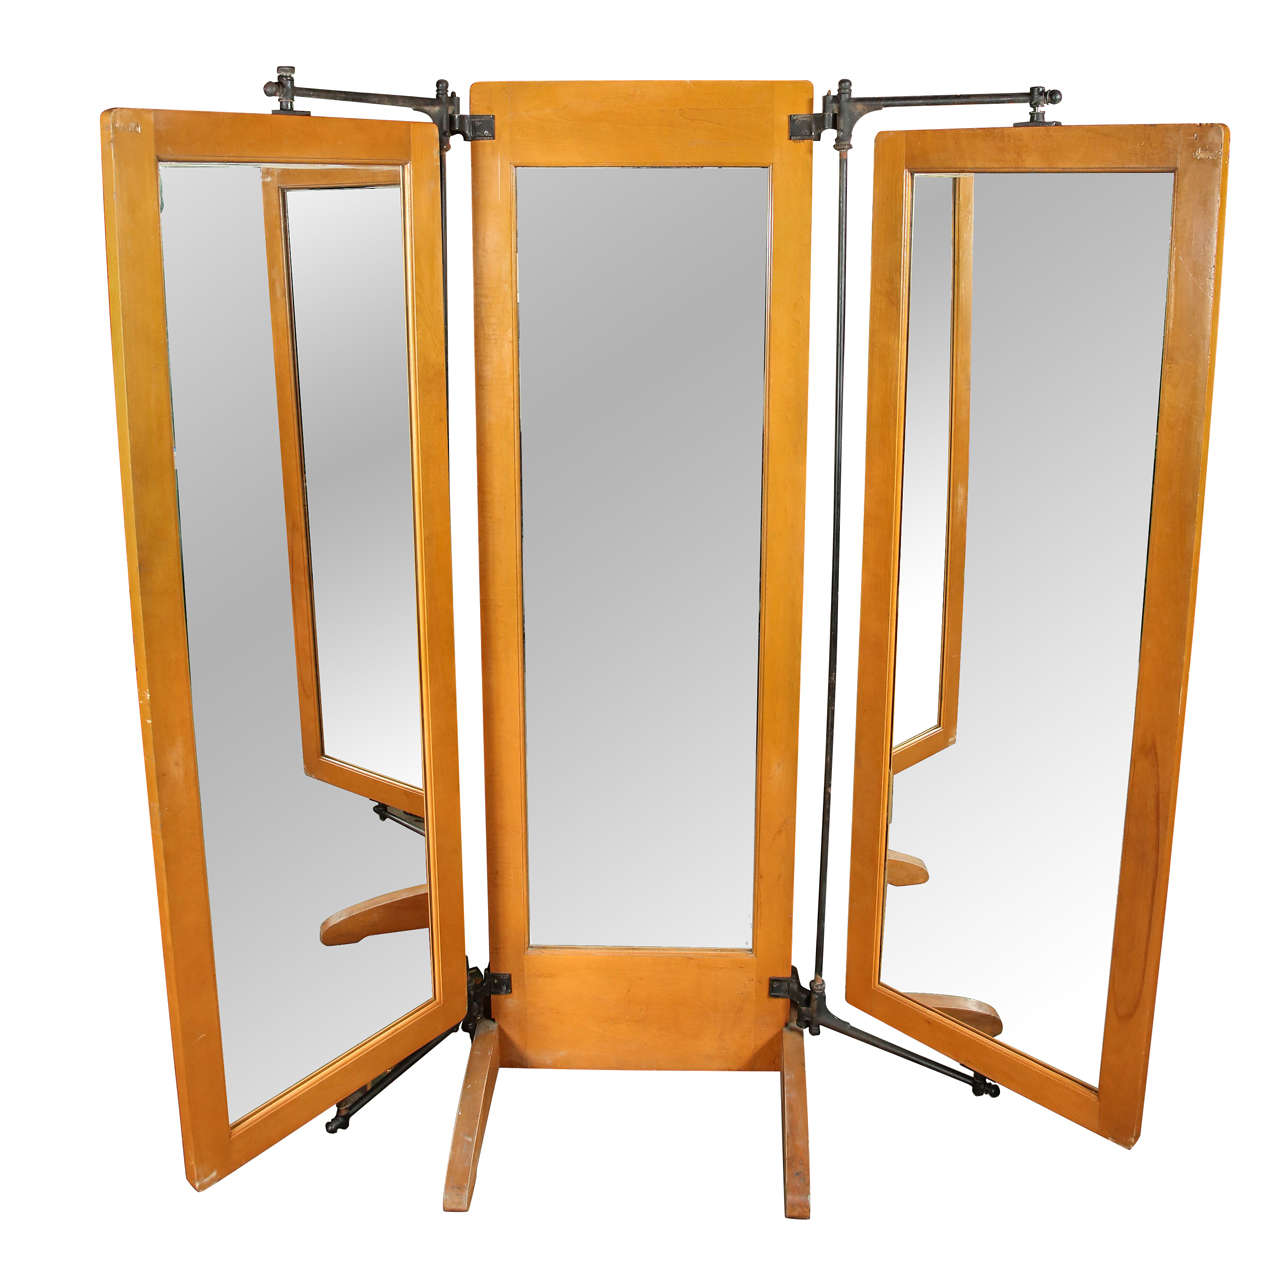 Antique Trifold Dressing Room Mirror At 1stdibs